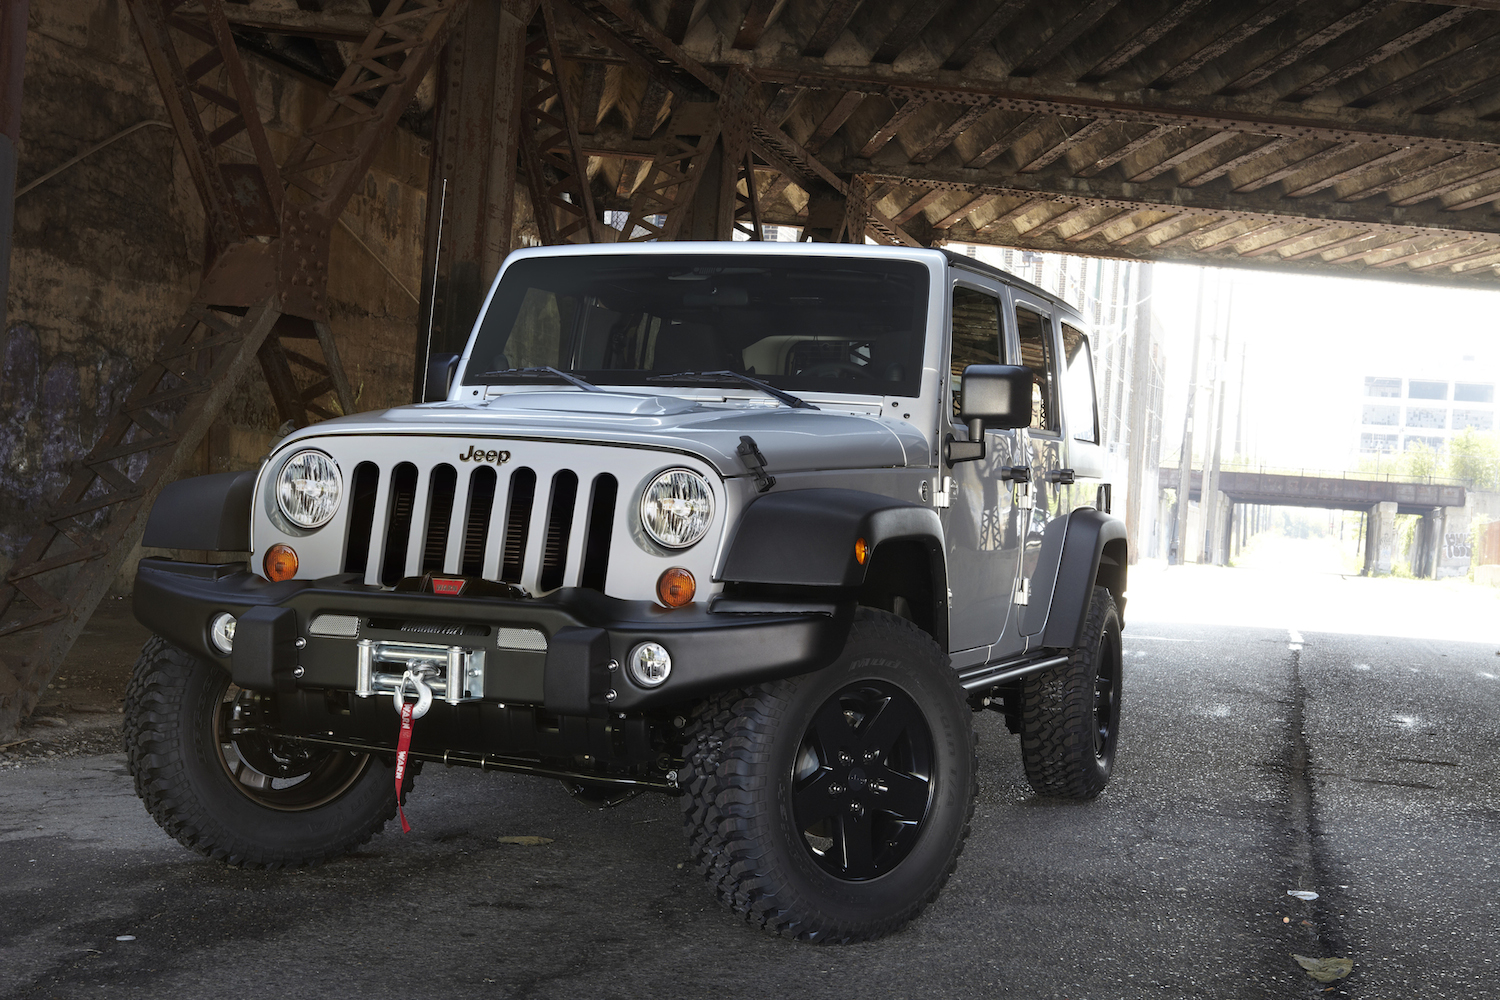 Jeep makes perfect vehicles for desert tours